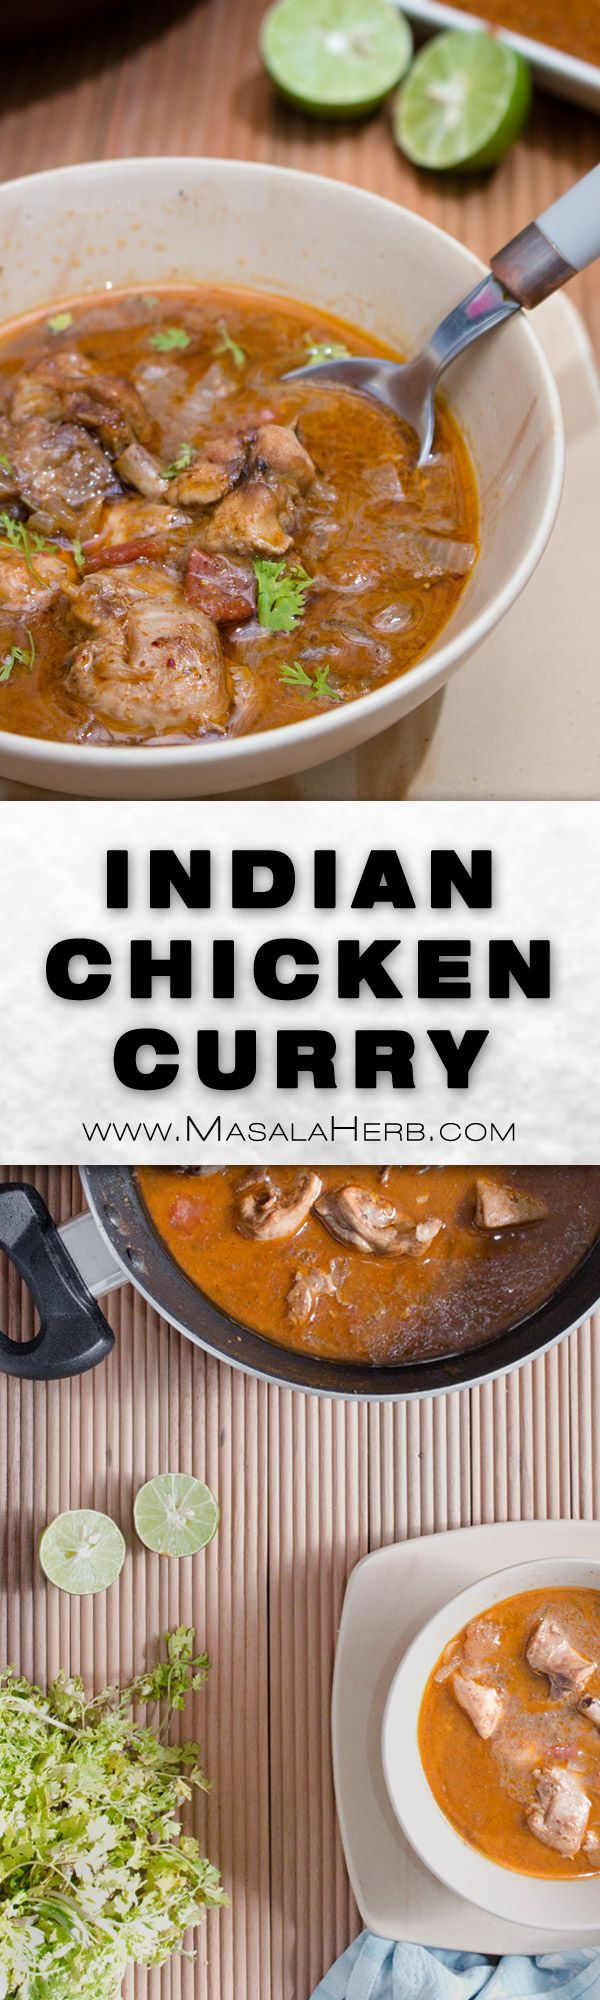 Easy Indian Chicken Curry Recipe - how to make chicken curry with coconut milk [One-Pot+VIDEO] www.MasalaHerb.com